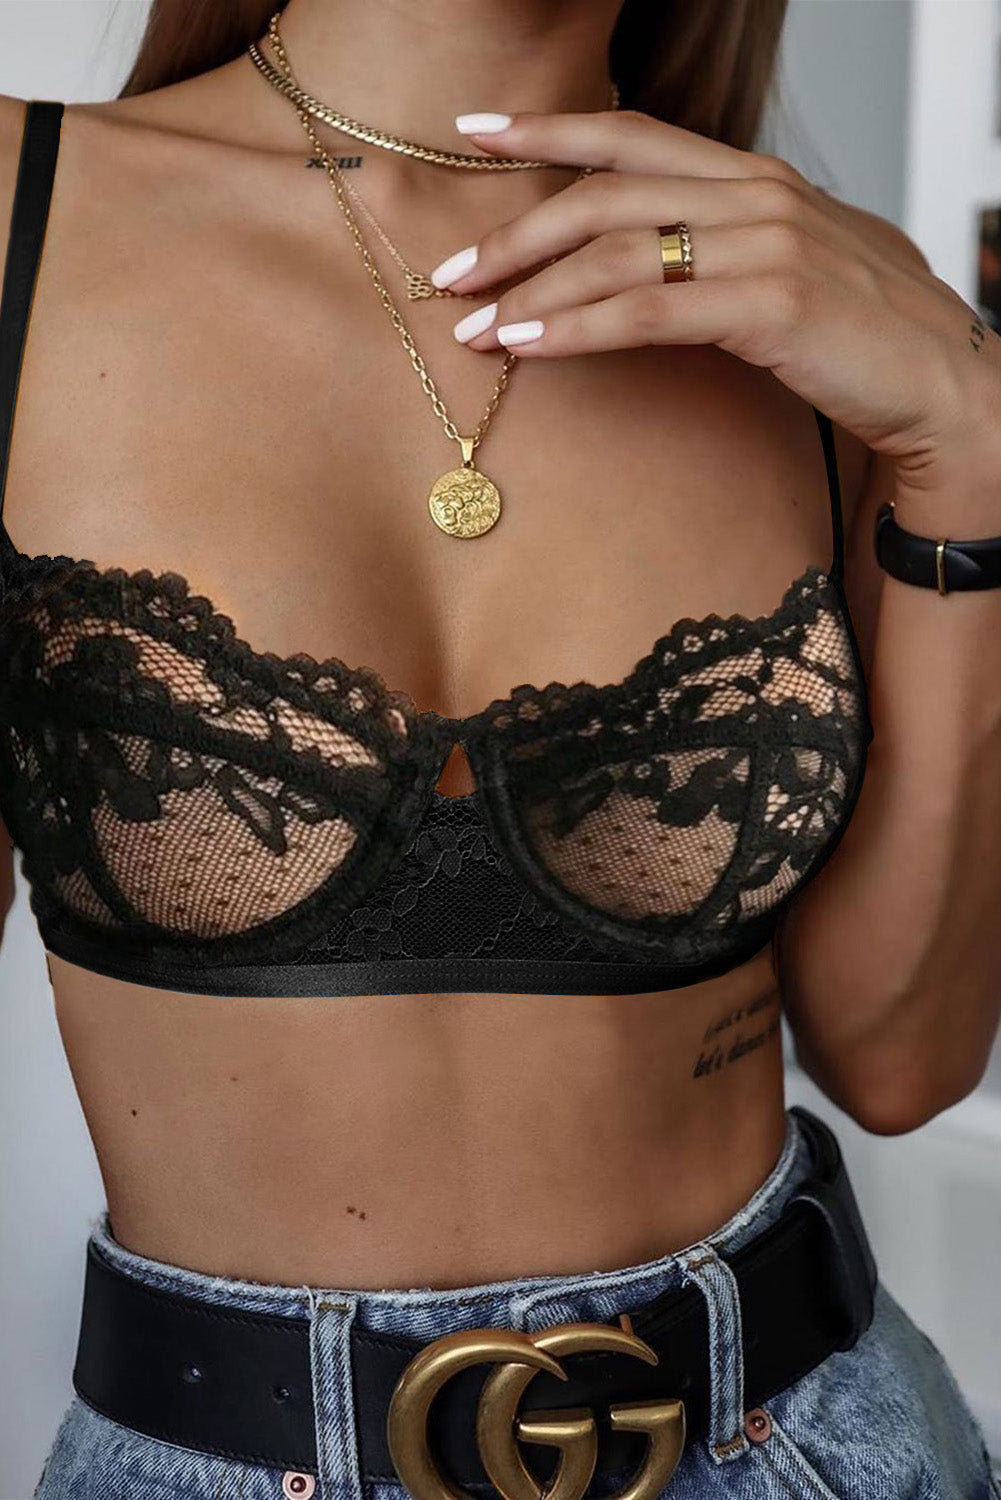 Black Romantic Love Lacy Bralette Lingerie